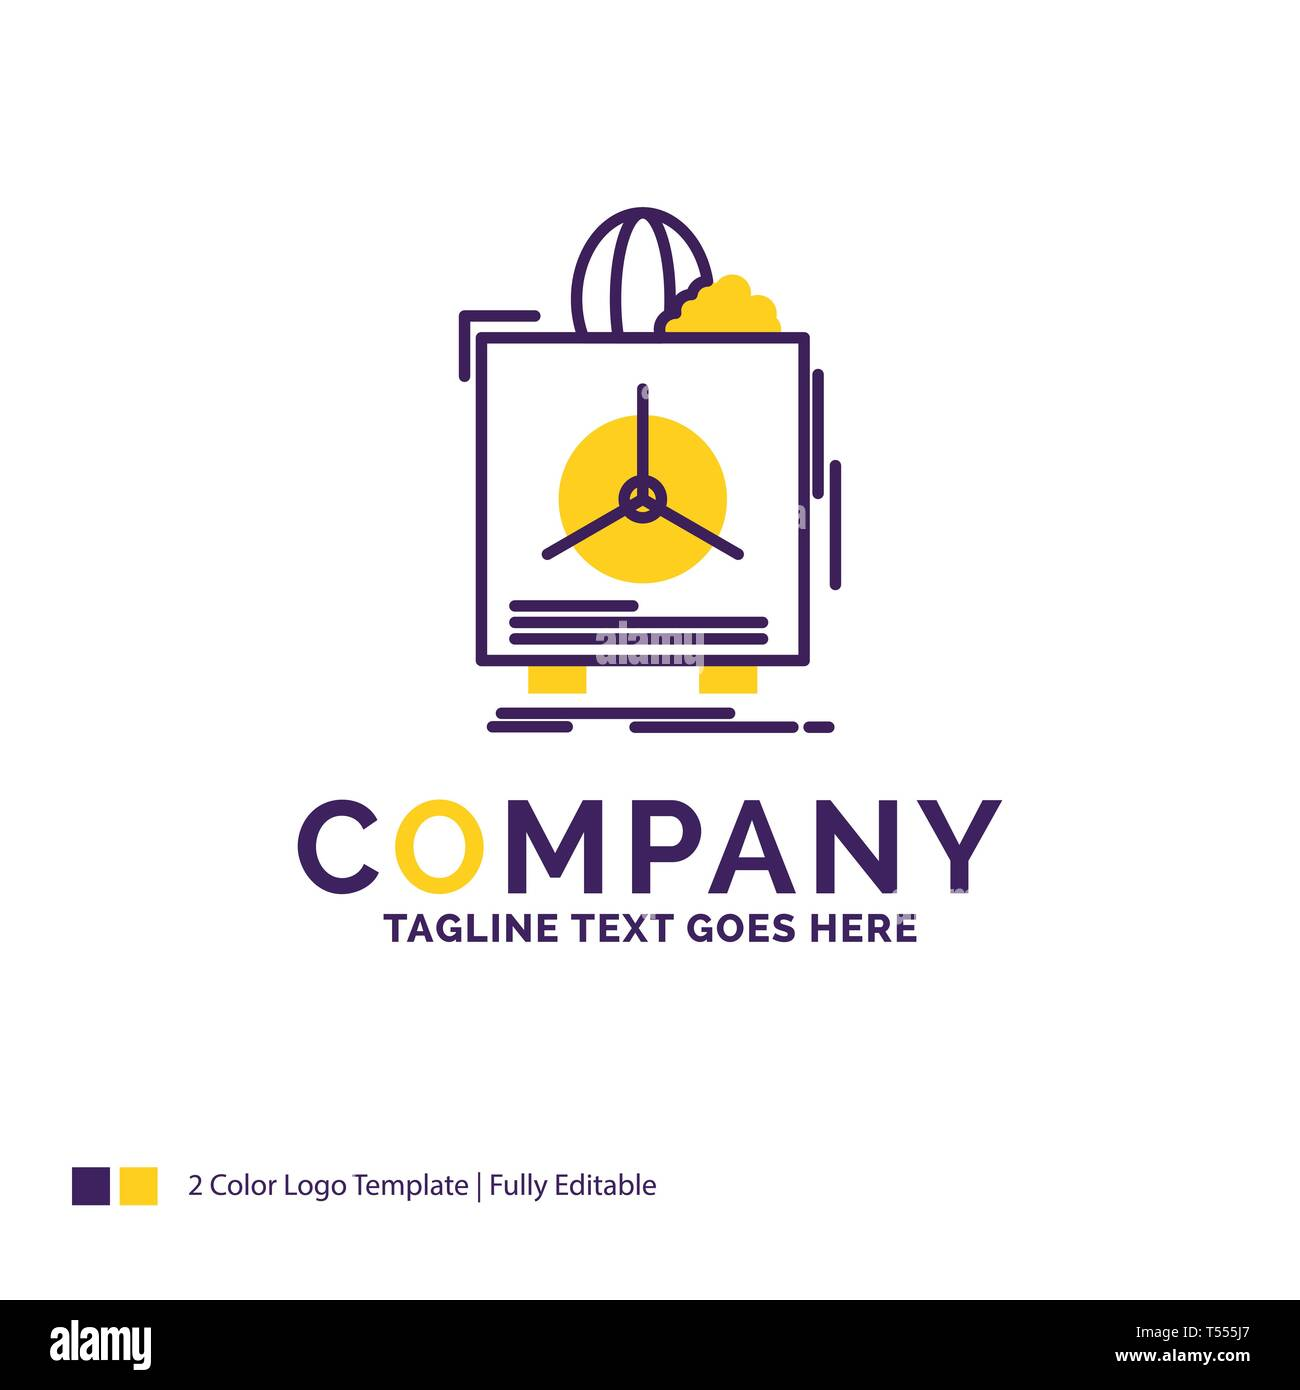 Company Name Logo Design For insurance, Fragile, product, warranty, health. Purple and yellow Brand Name Design with place for Tagline. Creative Logo  - Stock Image